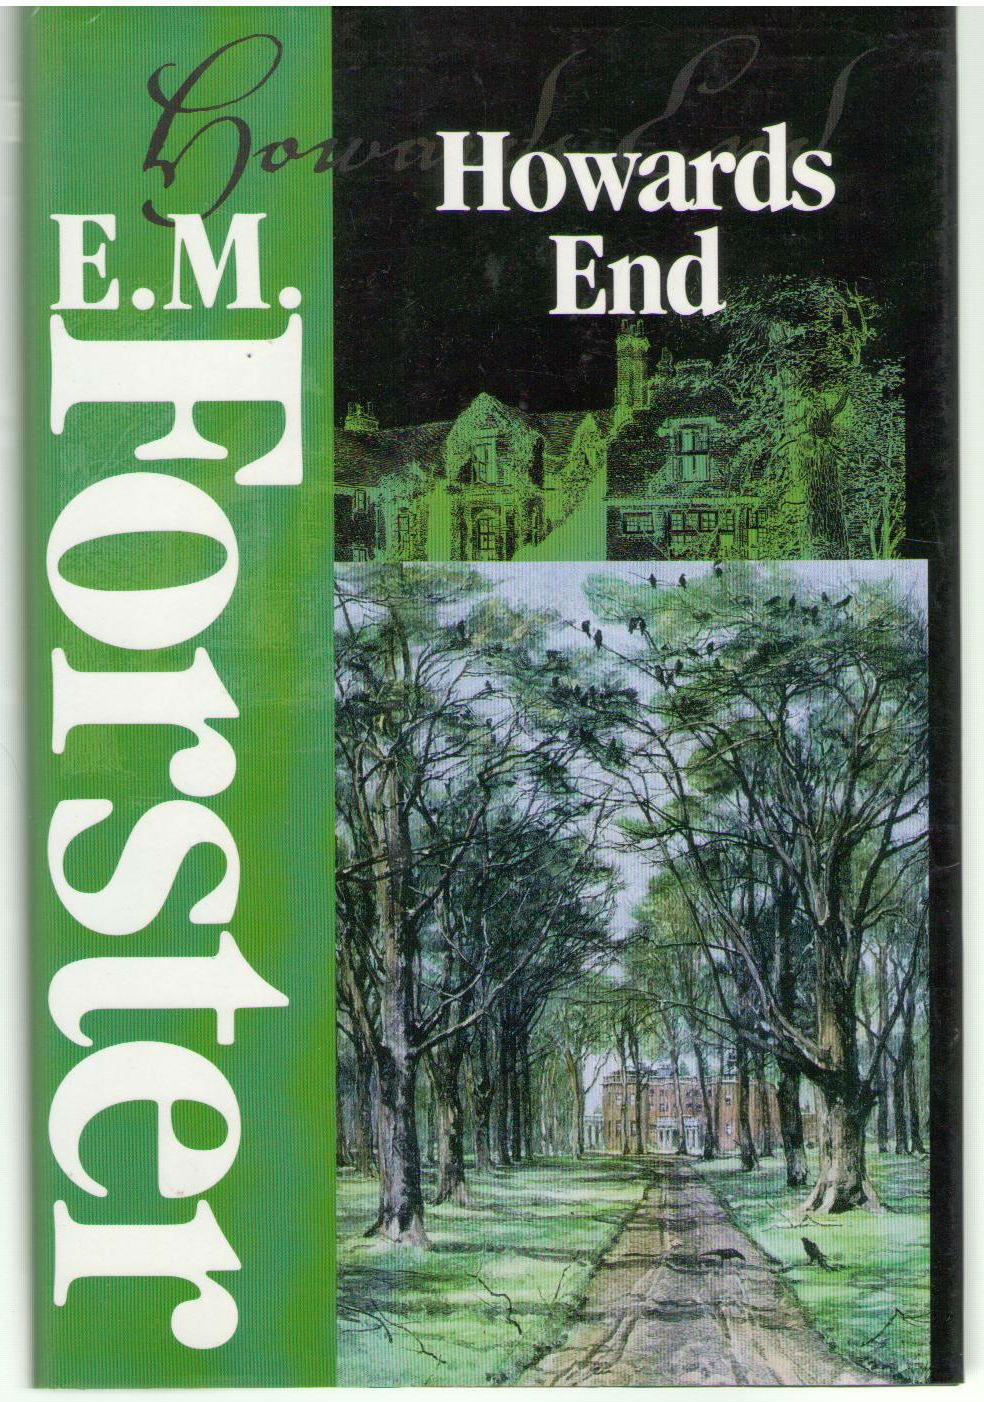 Signature Classics - Howards End, Forster, E. M.